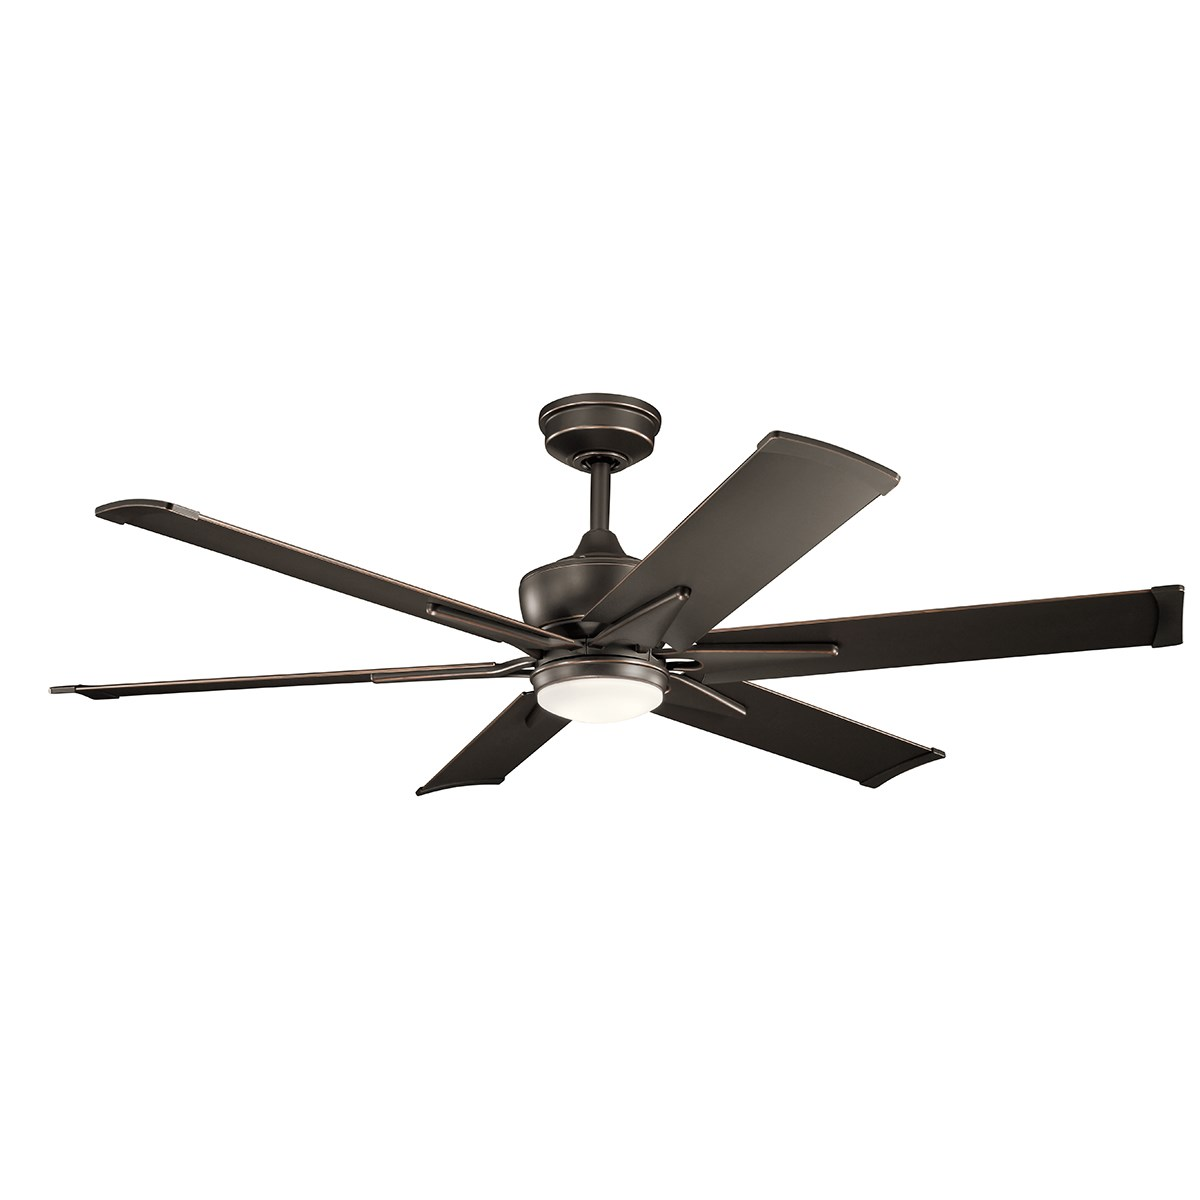 Kichler Ceiling Fan Remote Troubleshooting Best Fan In